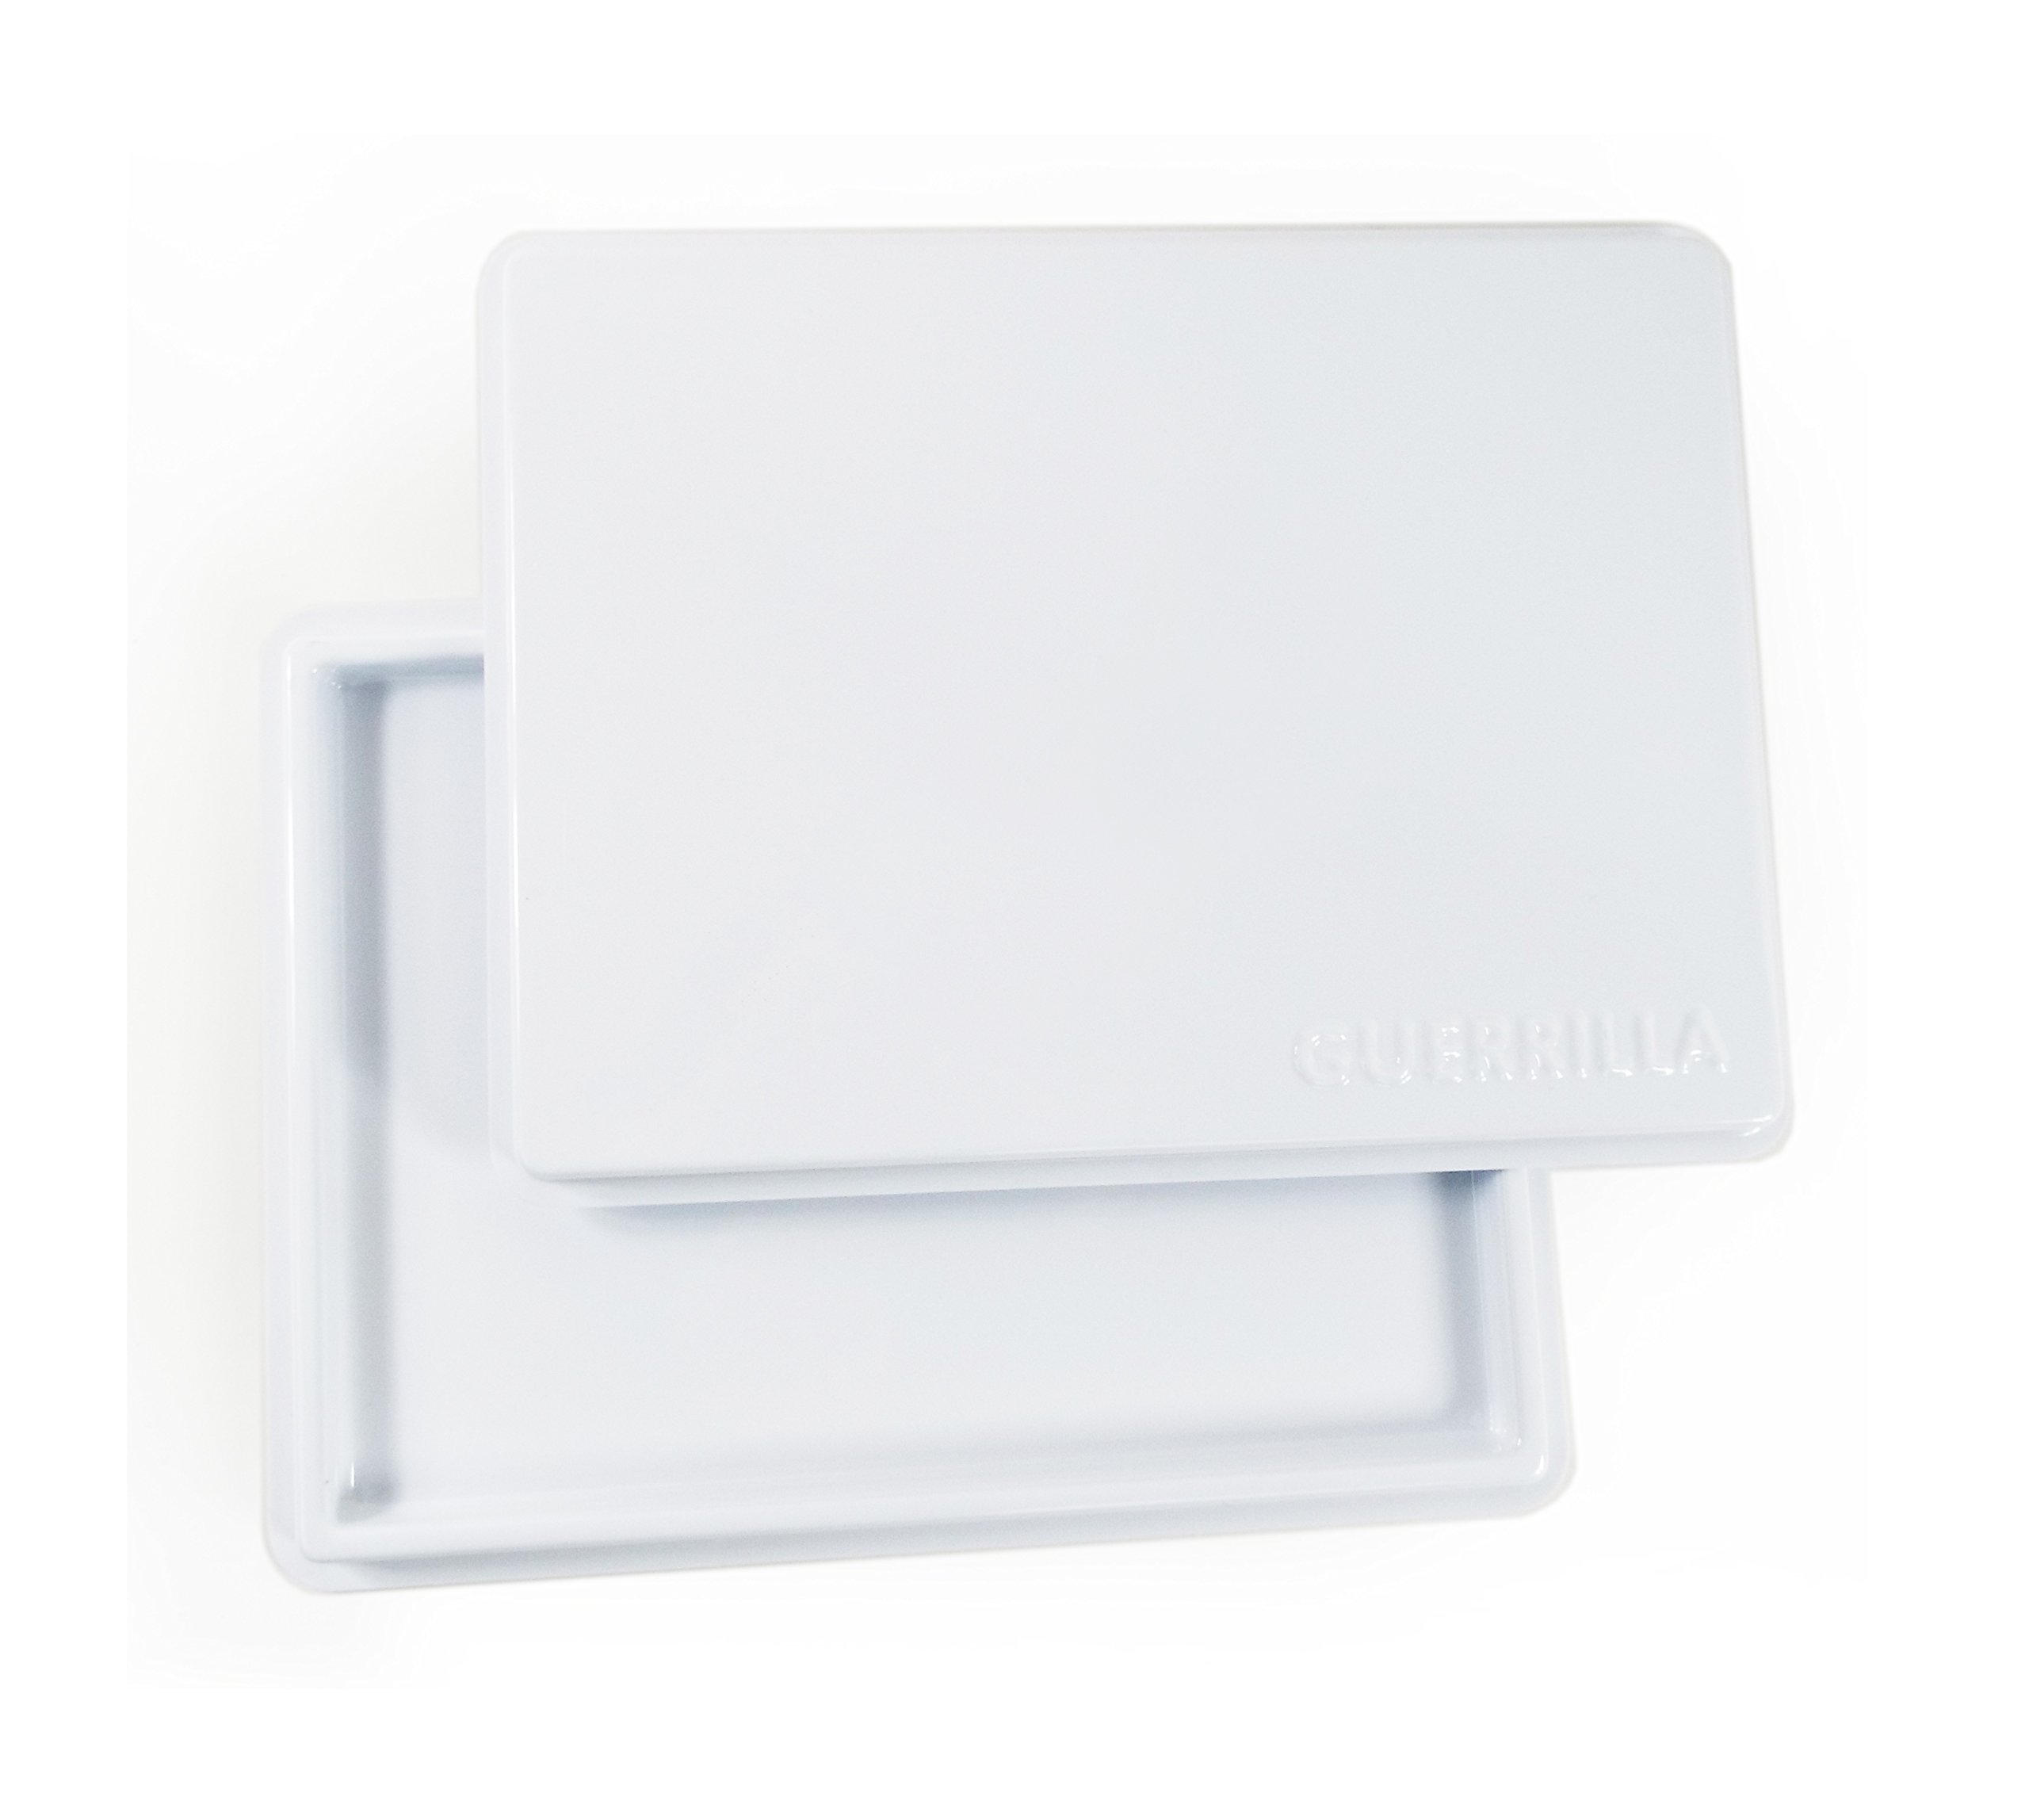 Guerrilla Painter Backpacker 9 by 12 Covered Palette Tray by Guerrilla Painter